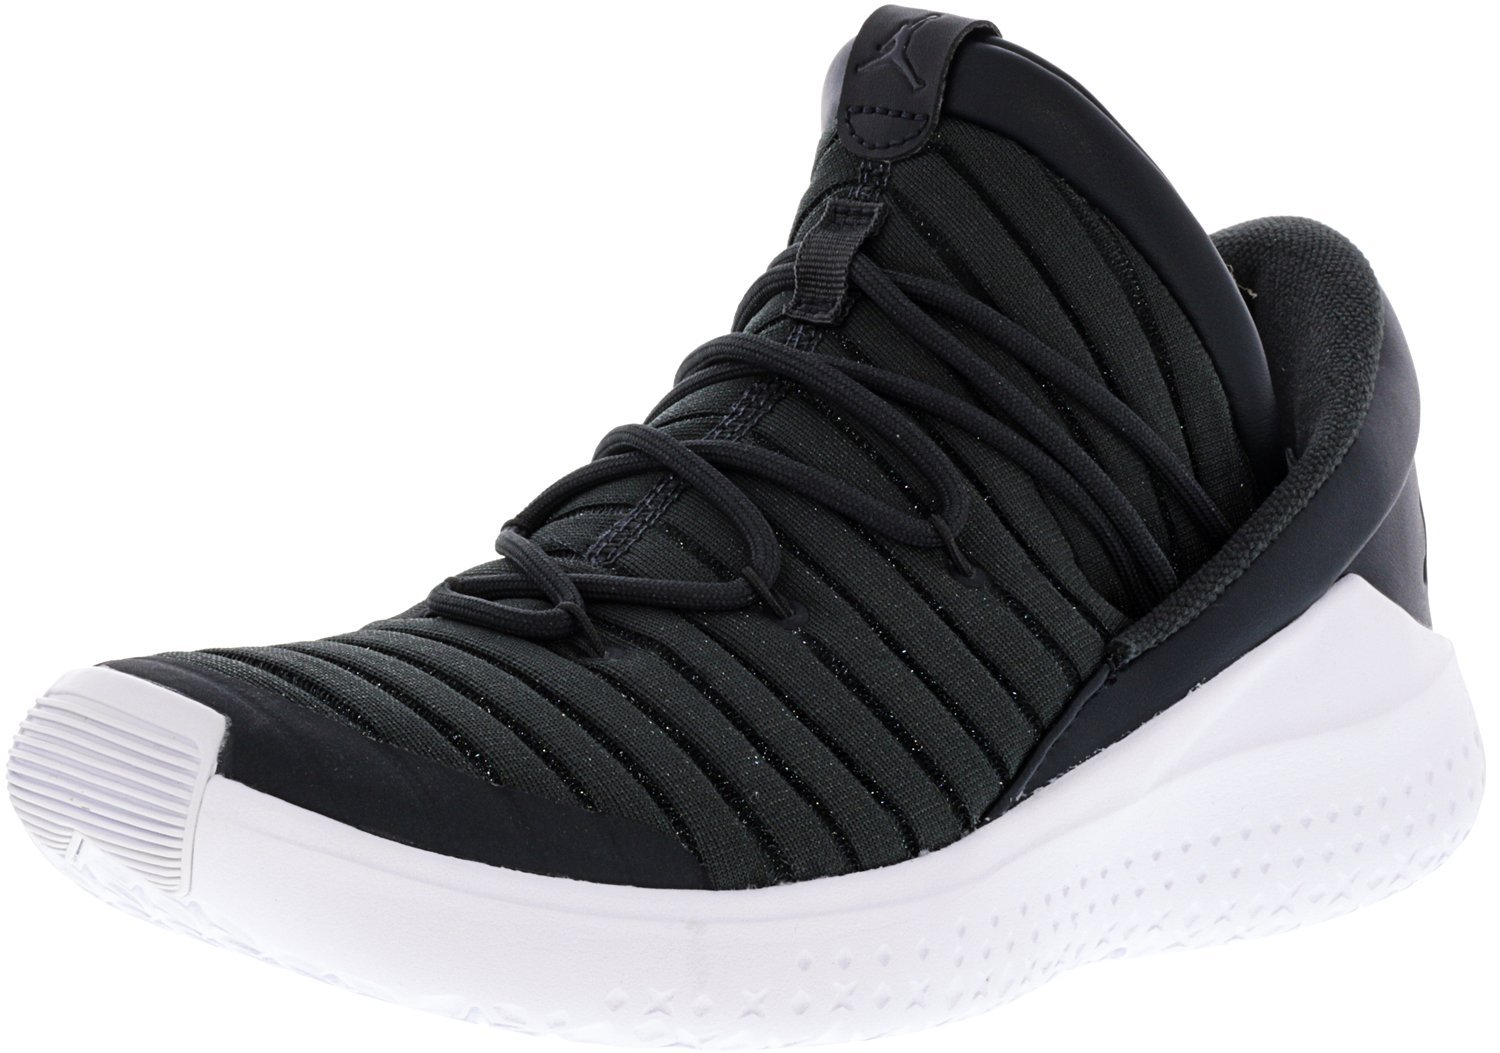 Nike Herren Jordan Flight Luxe Anthrazit Textil/Synthetik Sneaker  41 EU|Anthrazit (Anthracite/Black/White)